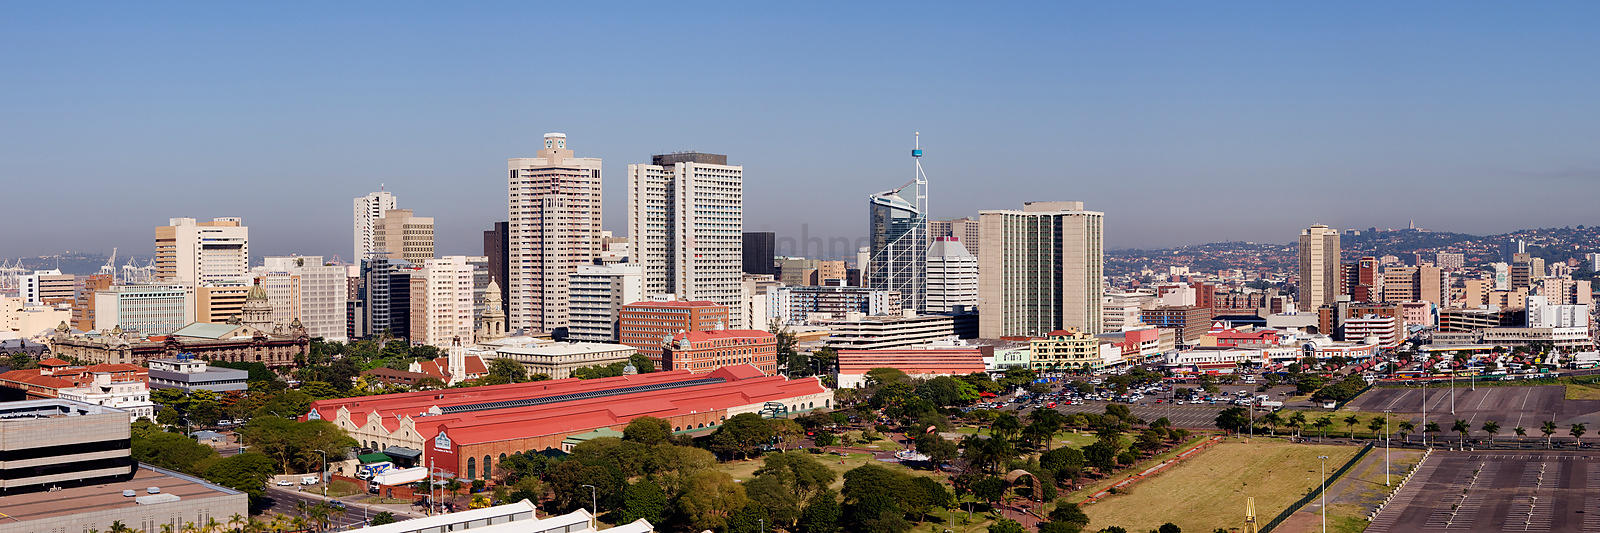 Skyline of the City of Durban